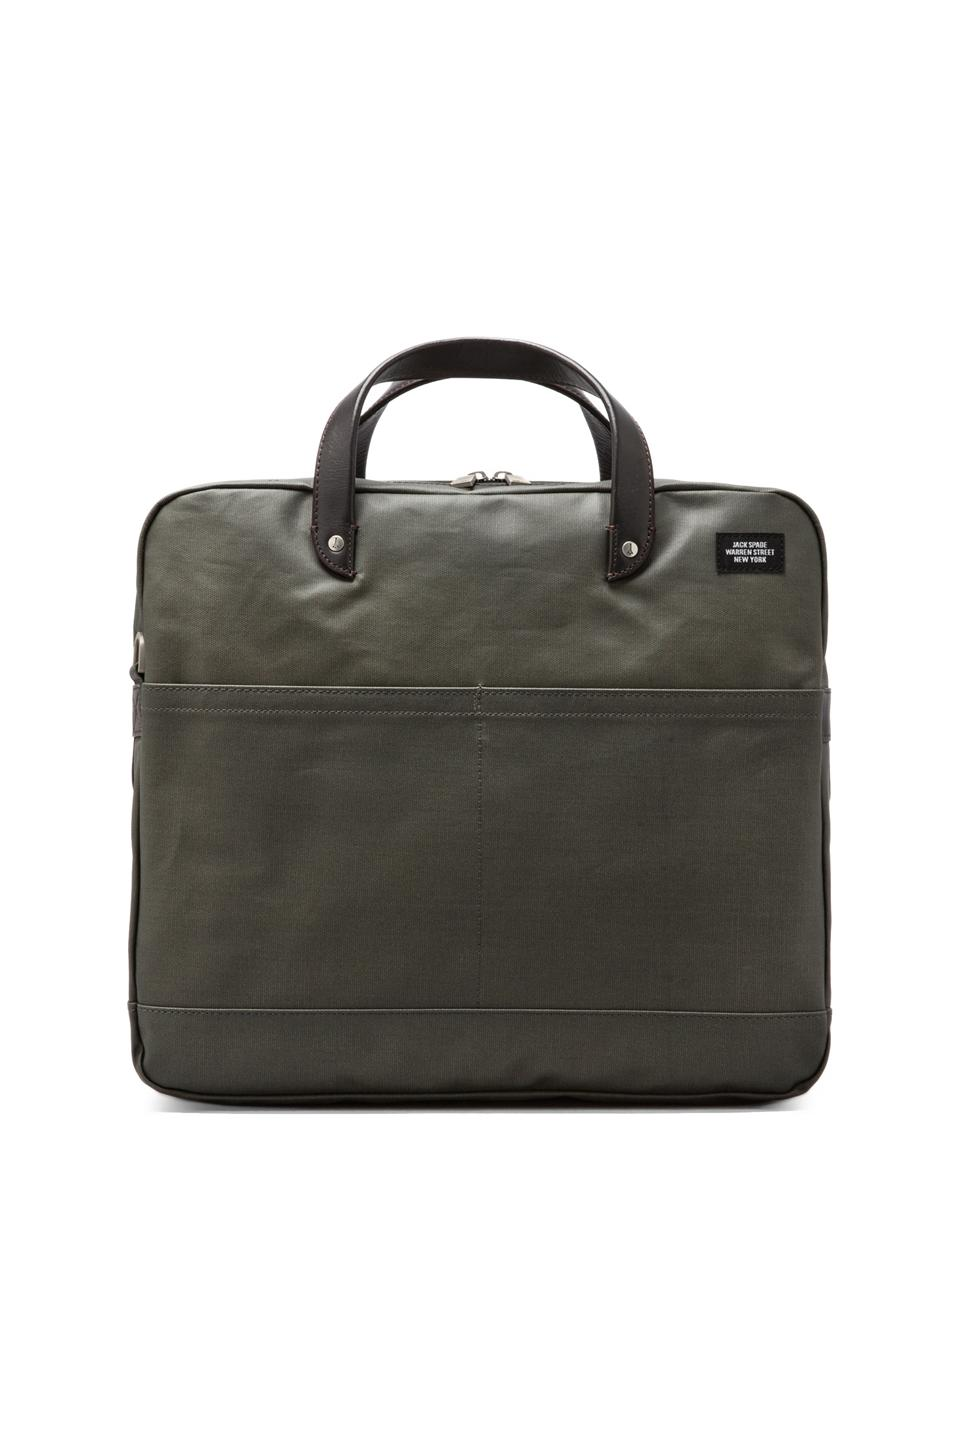 Jack Spade Coated Canvas Carryall in Tank